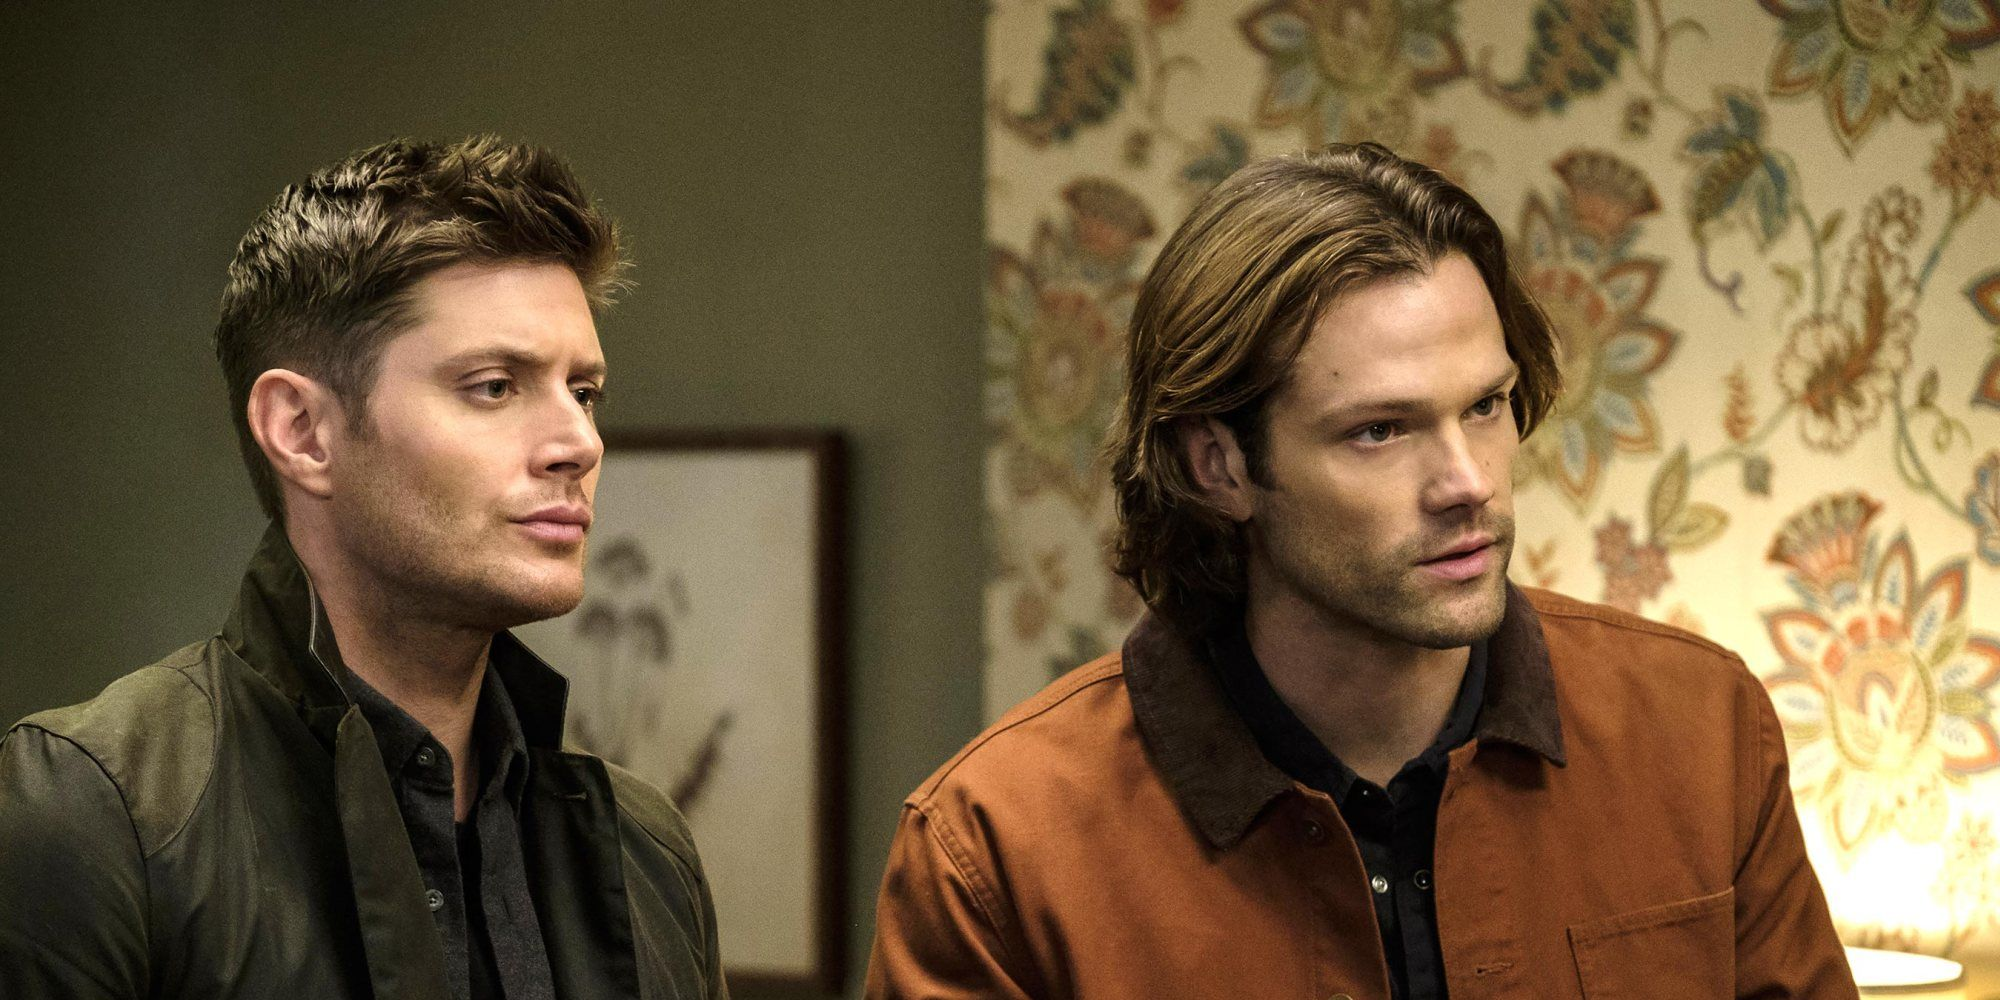 Dean and Sam Winchester in 'Supernatural'